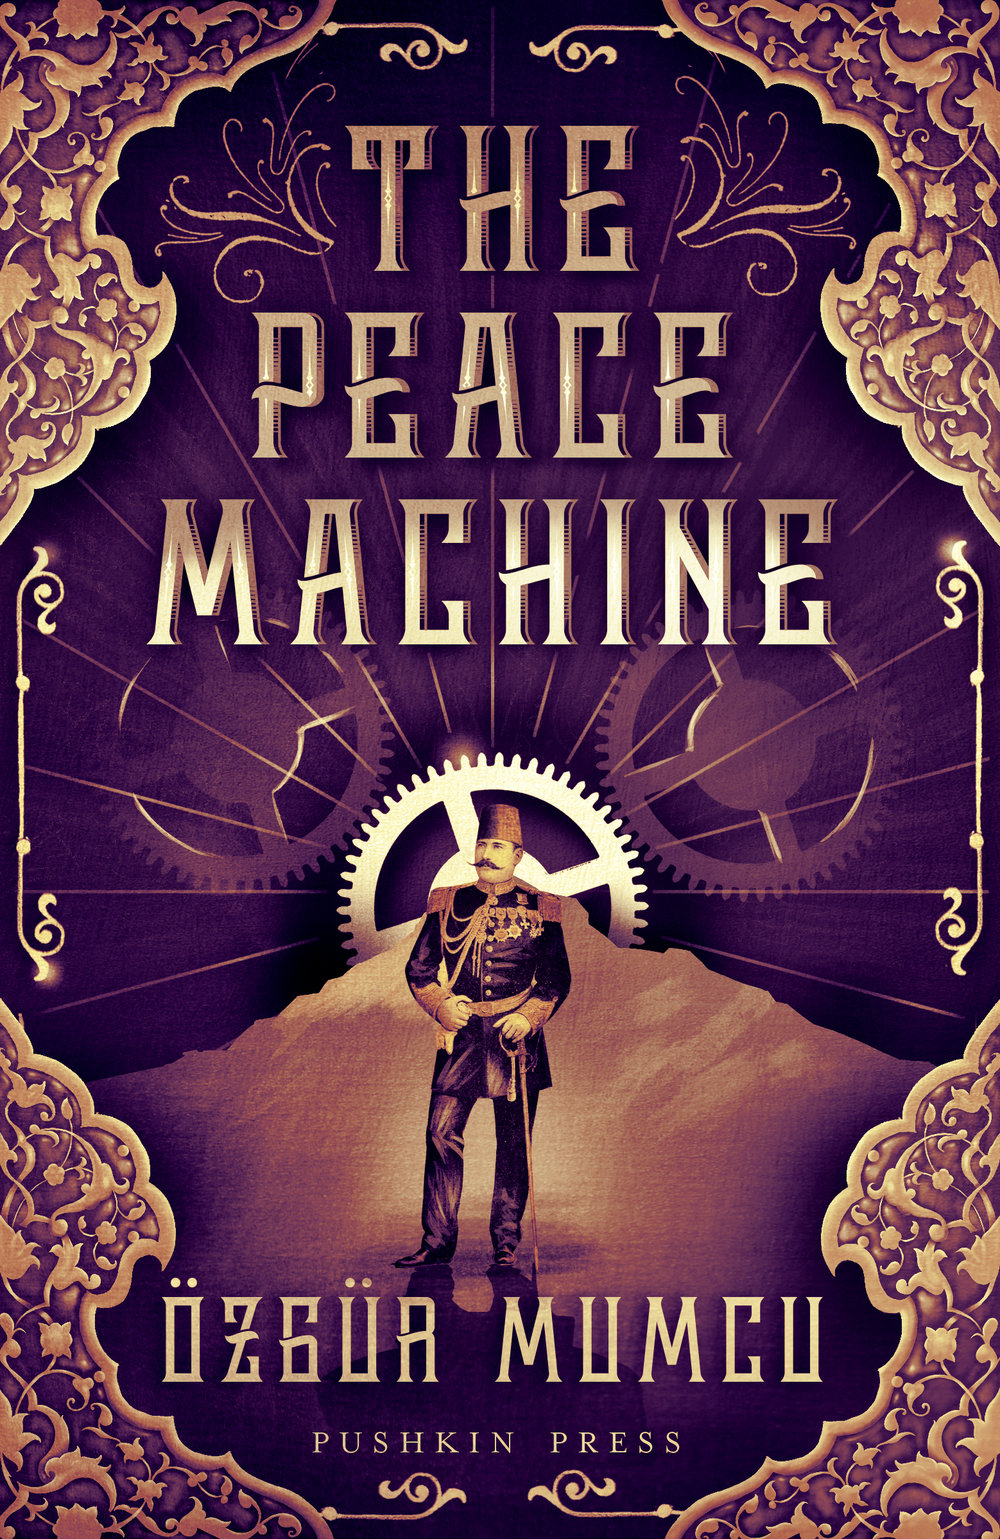 Peace+machine_draft-1.jpg